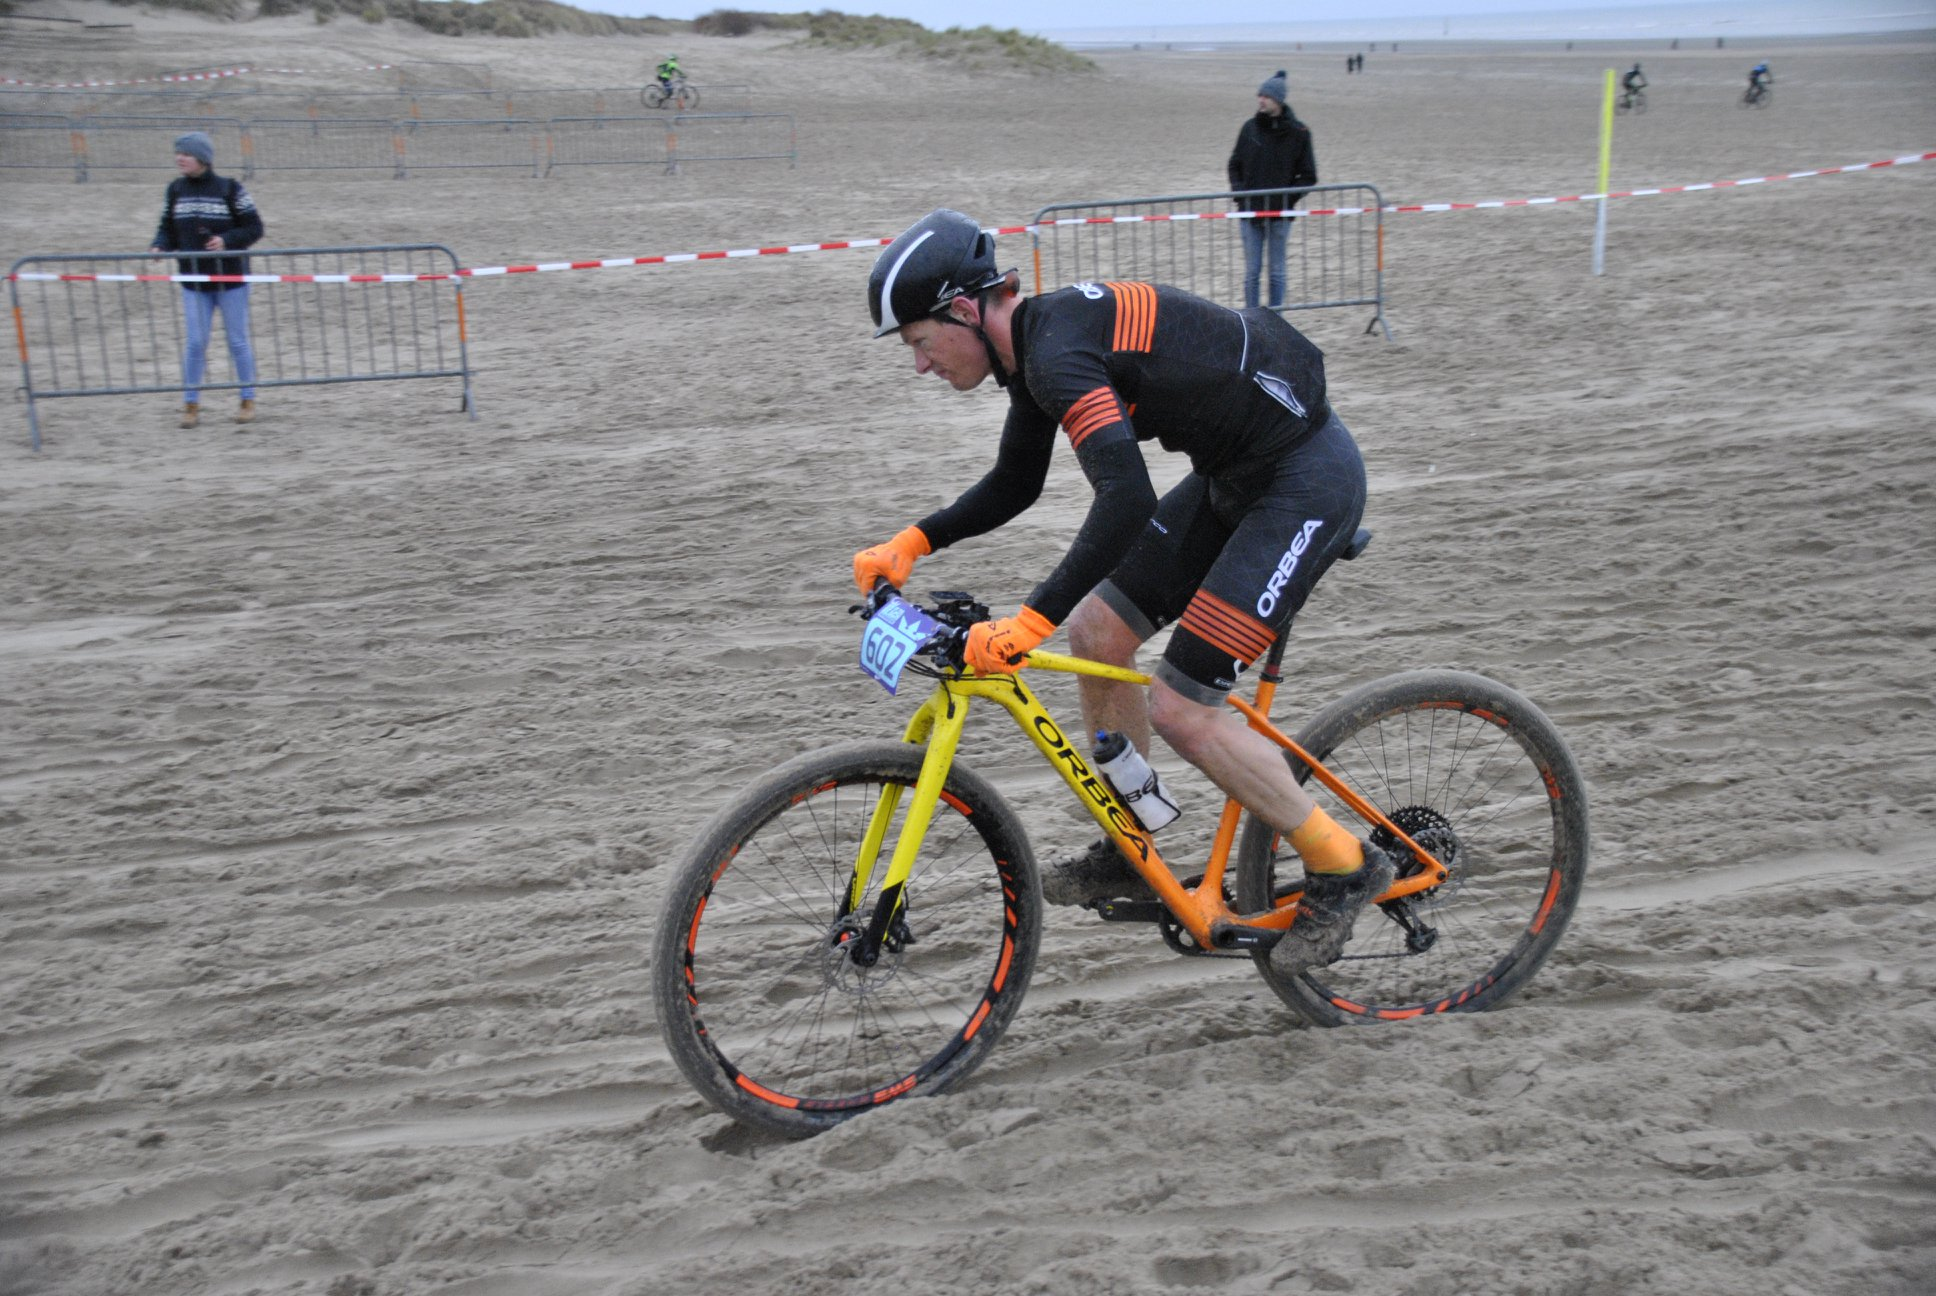 Seppe Odeyn is King of the Beach in Oostduinkerke